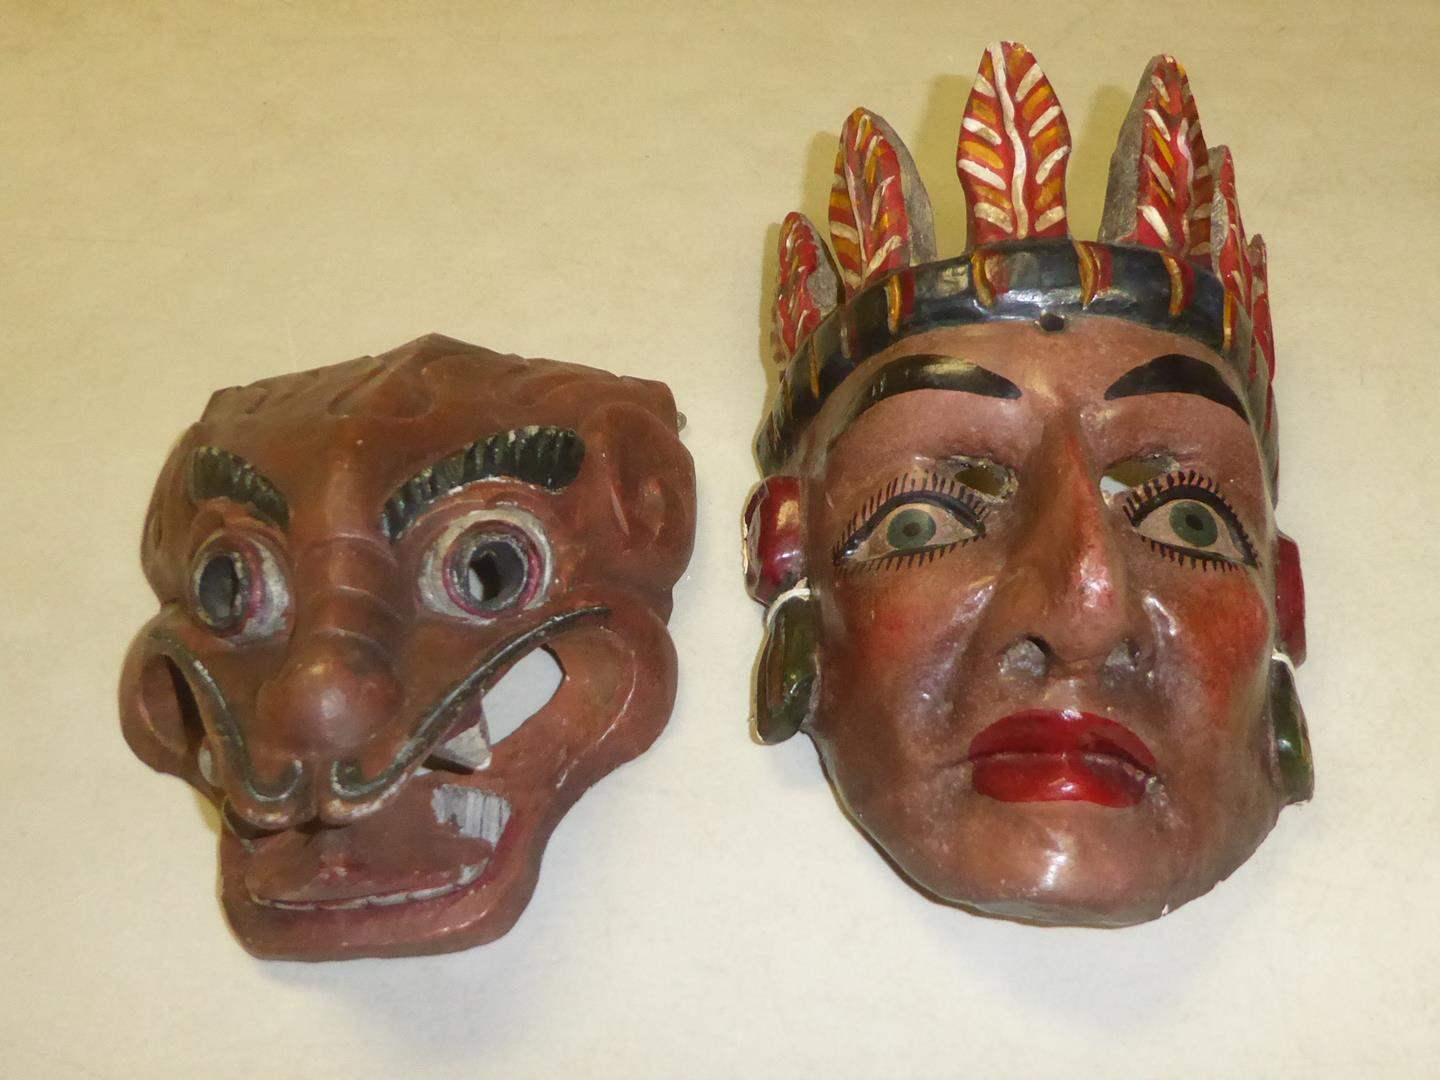 Lot # 51 - Two Vintage Hand Carved & Hand Painted Wooden Masks (main image)